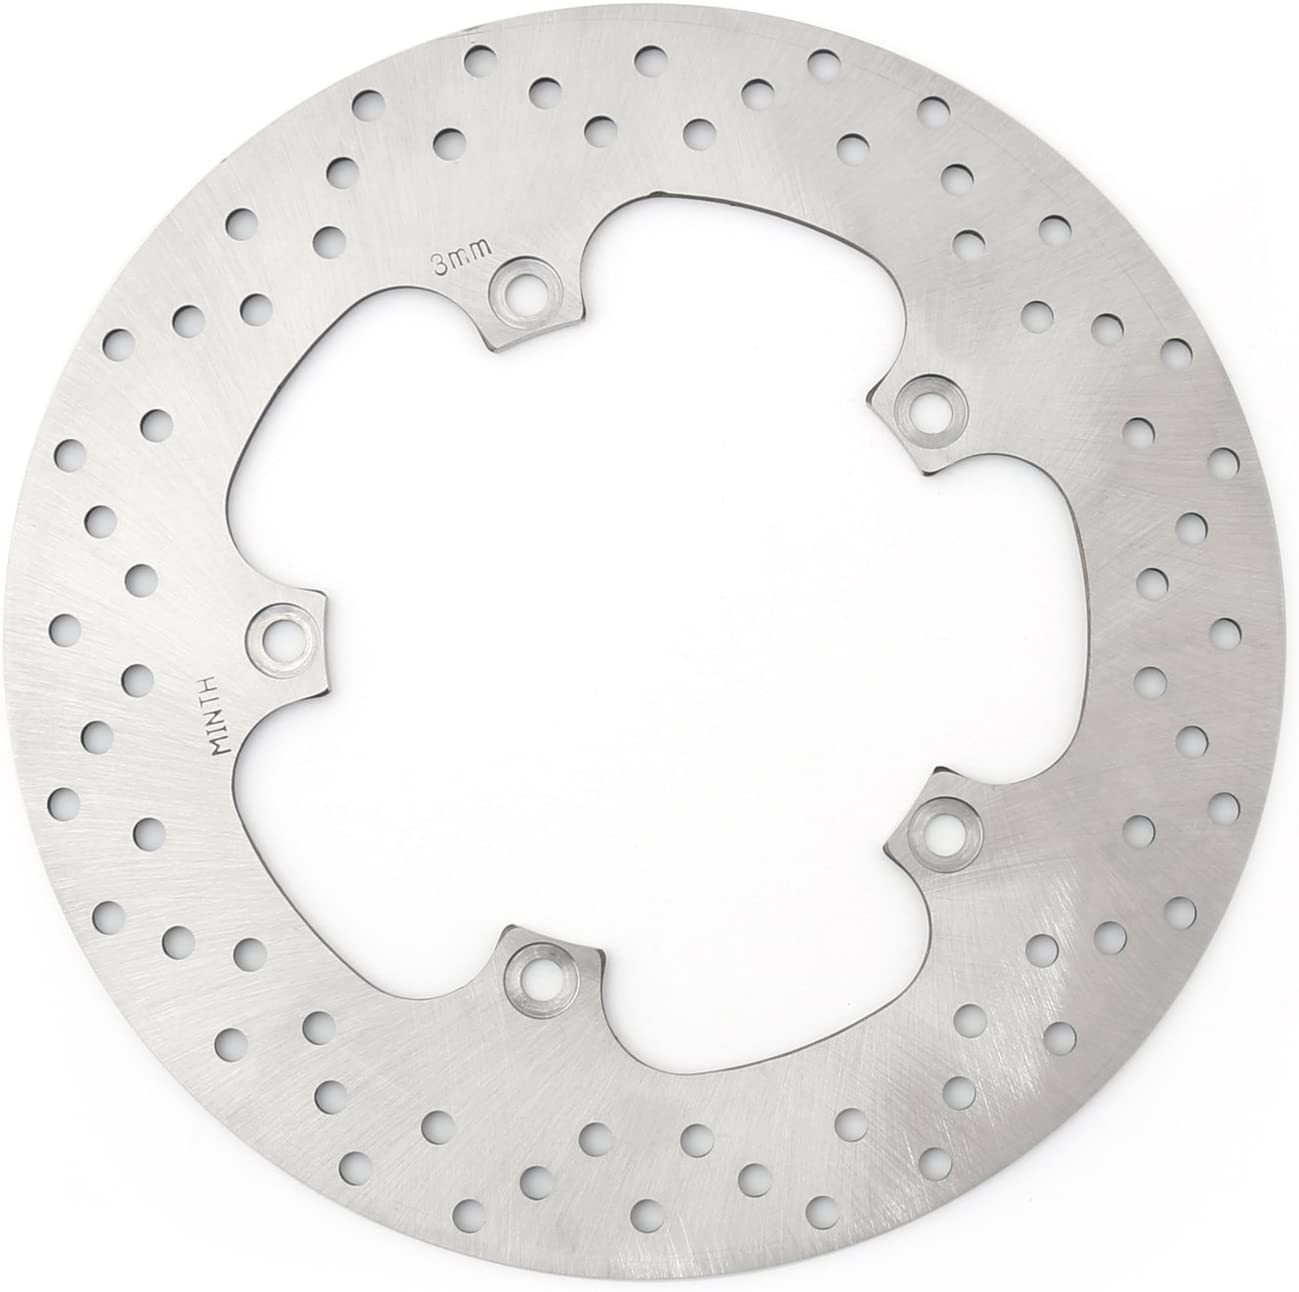 Artudatech Front Brake Disc Rotor Yamaha Max 85% OFF X-Max YP125R Dealing full price reduction YP125 For